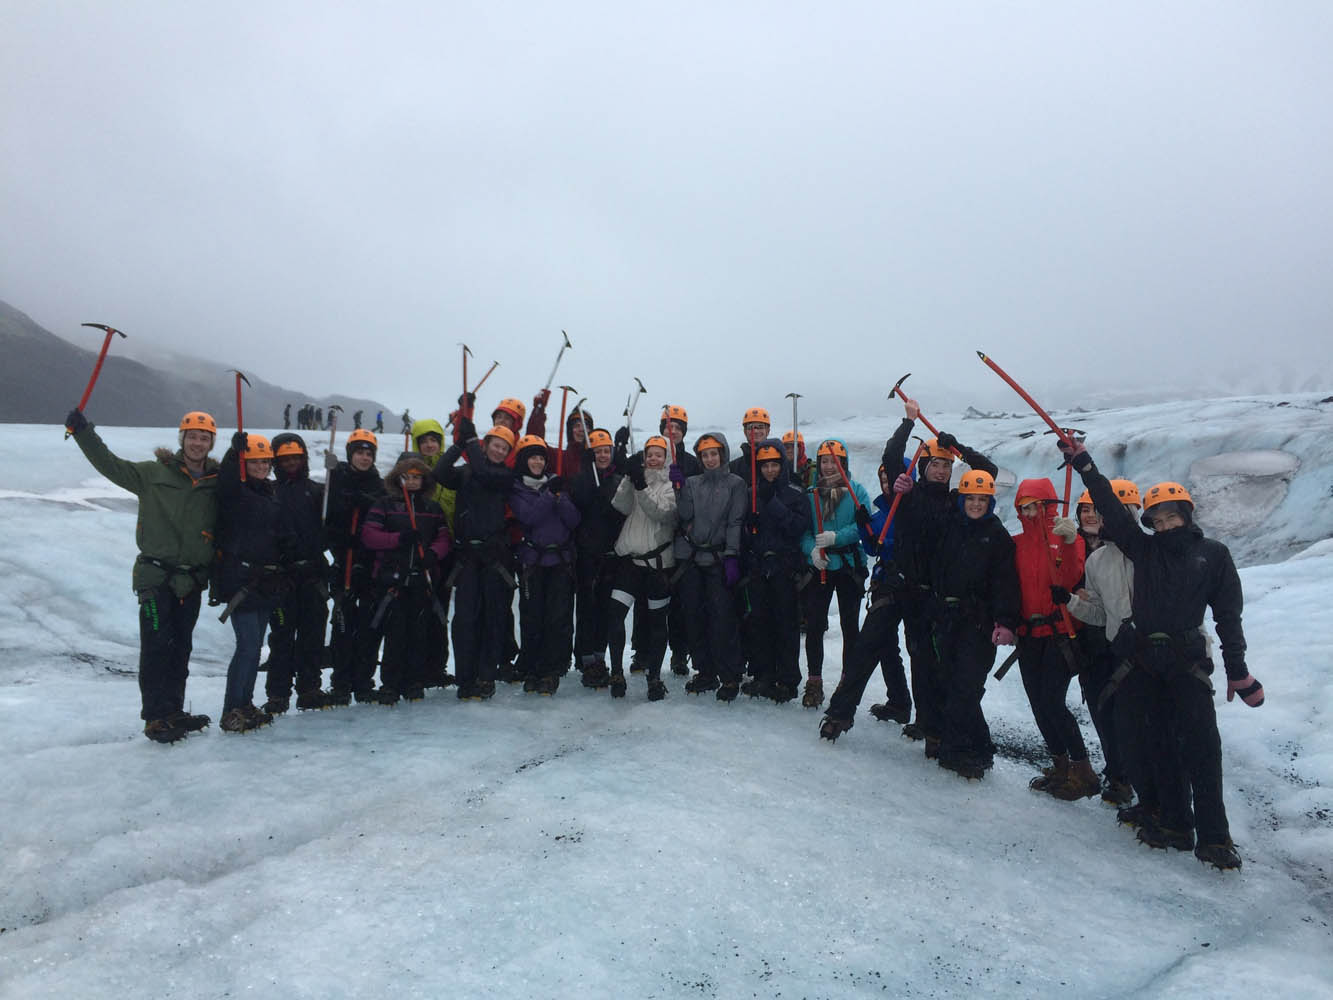 Iceland Geography 'Fire and Ice' Visit